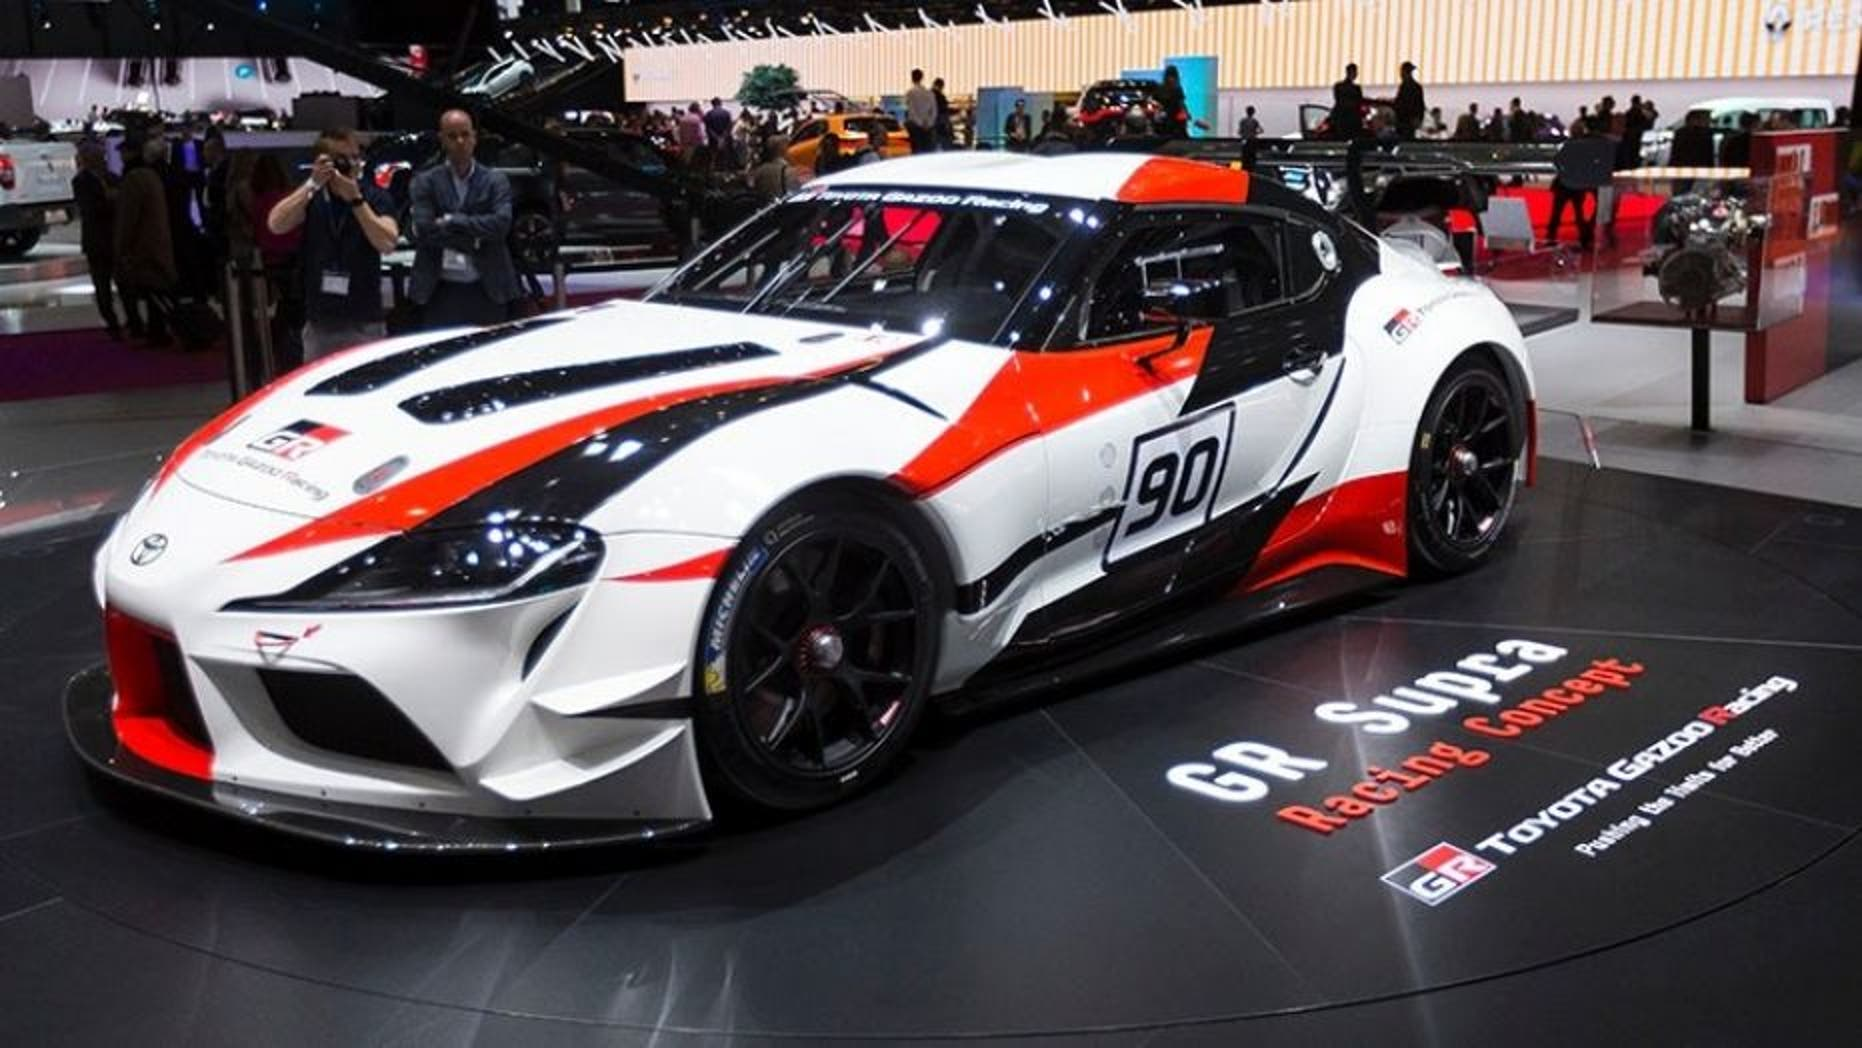 The GR Supra is a concept for a road racing version of the upcoming sports car.